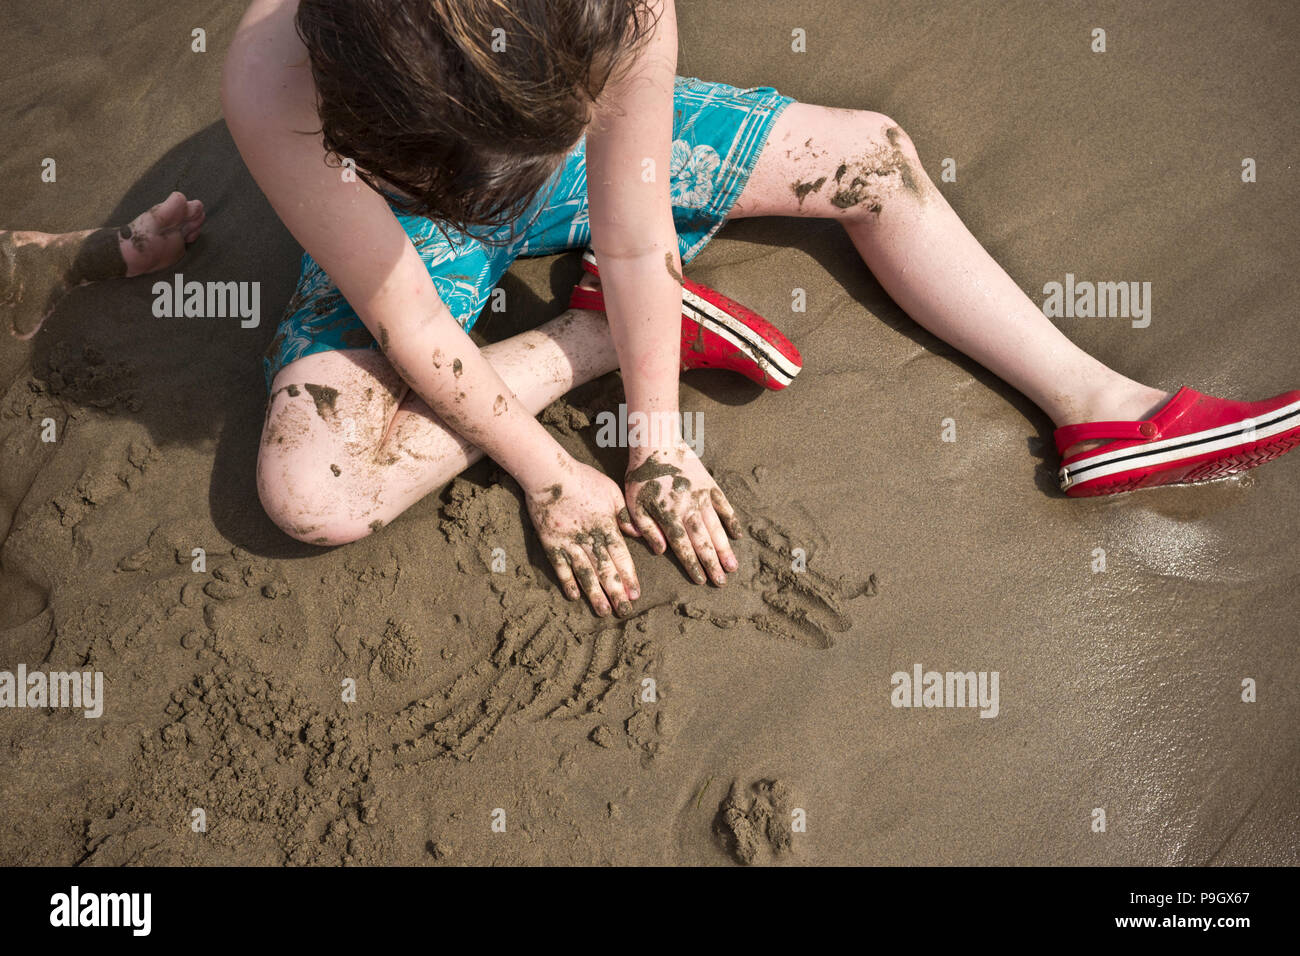 looking down at a ten year old boy sitting on a sandy beach playing with the sand with his hands - Stock Image